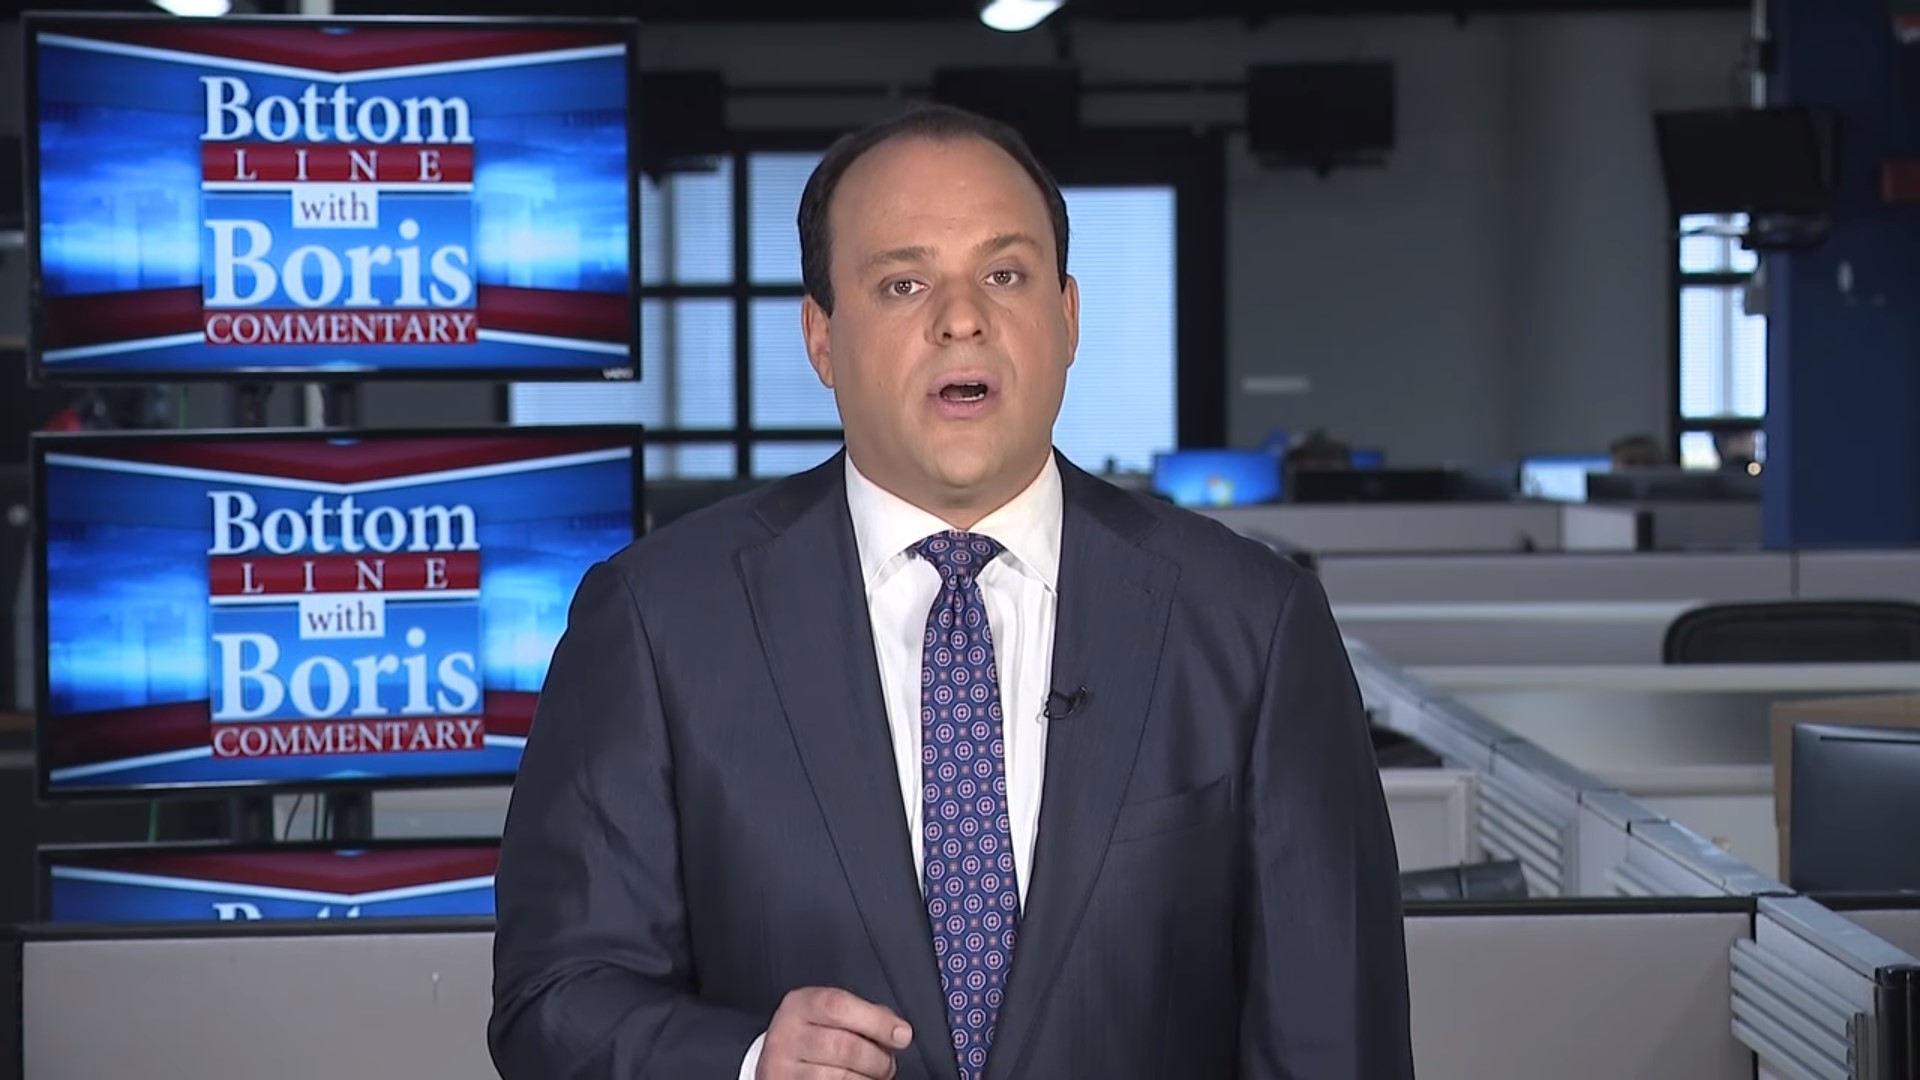 Sinclair's Latest 'Must-Run' Segment Pushes Dishonest Right-Wing Smear Against CNN's Chris Cillizza